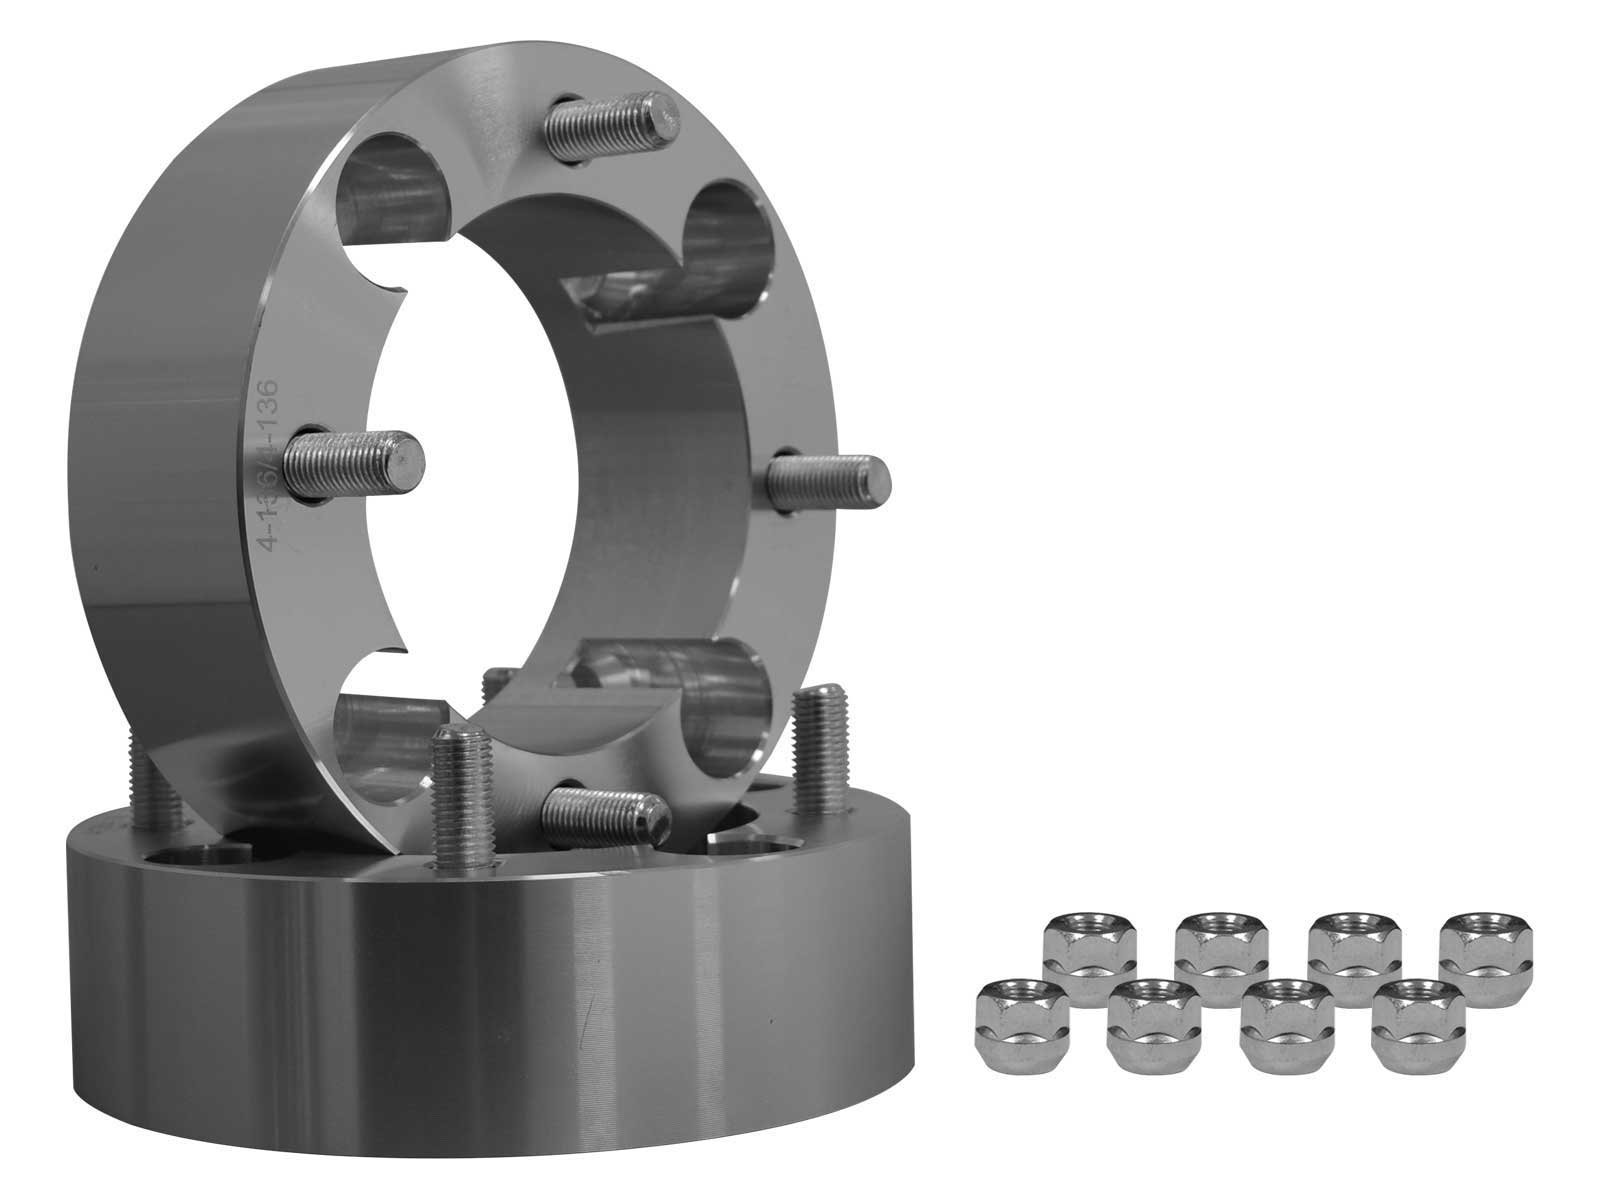 SuperATV 2'' Aluminum Heavy Duty Wheel Spacers for Honda 300-400EX/450R (All Years) - 4/144 Bolt Pattern - Pair - Fits FRONT ONLY